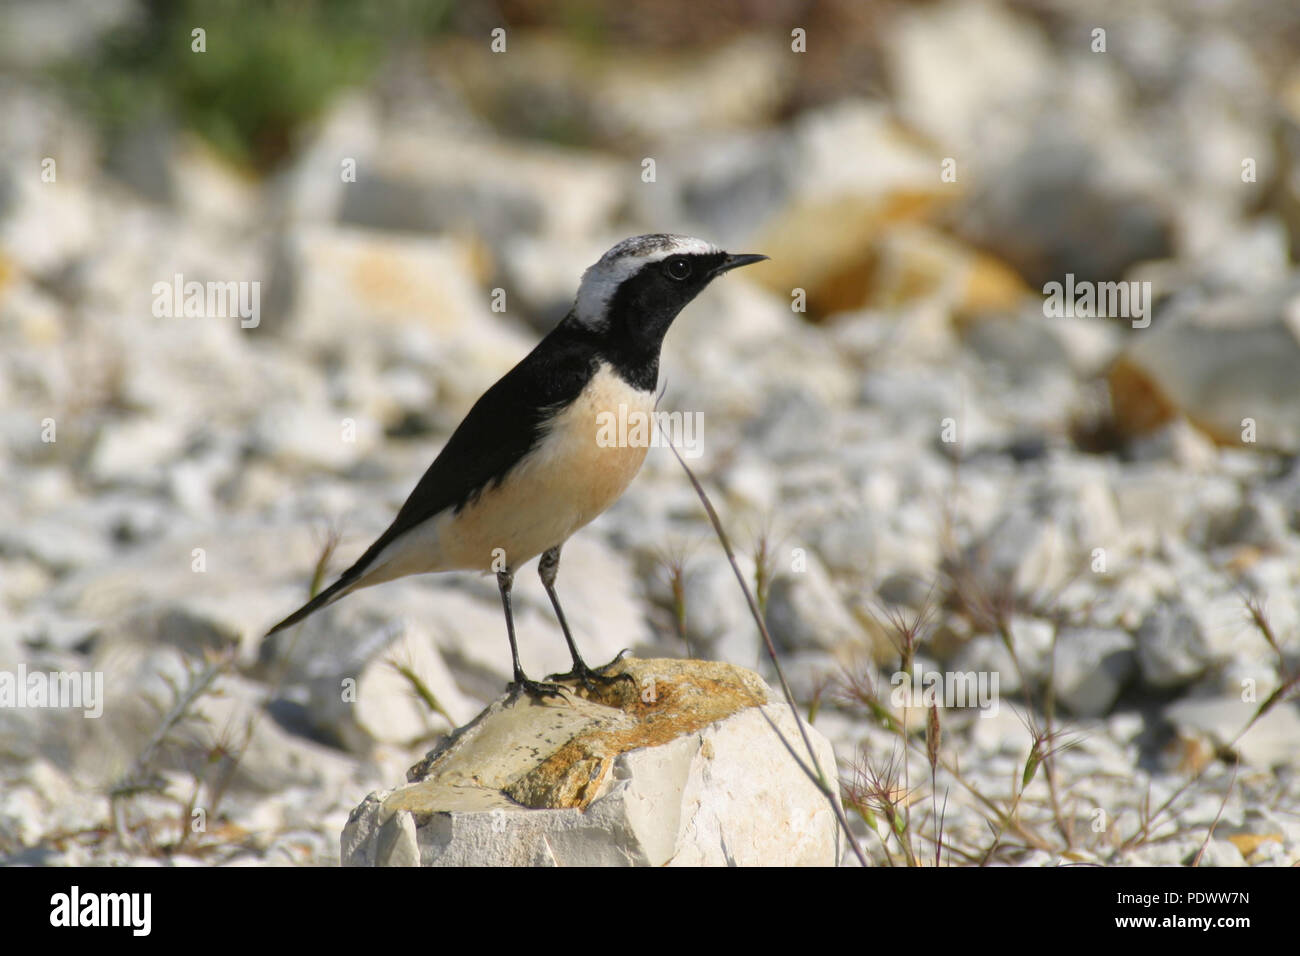 Cyprus Wheatear looking arround from a rocky stone. Stock Photo